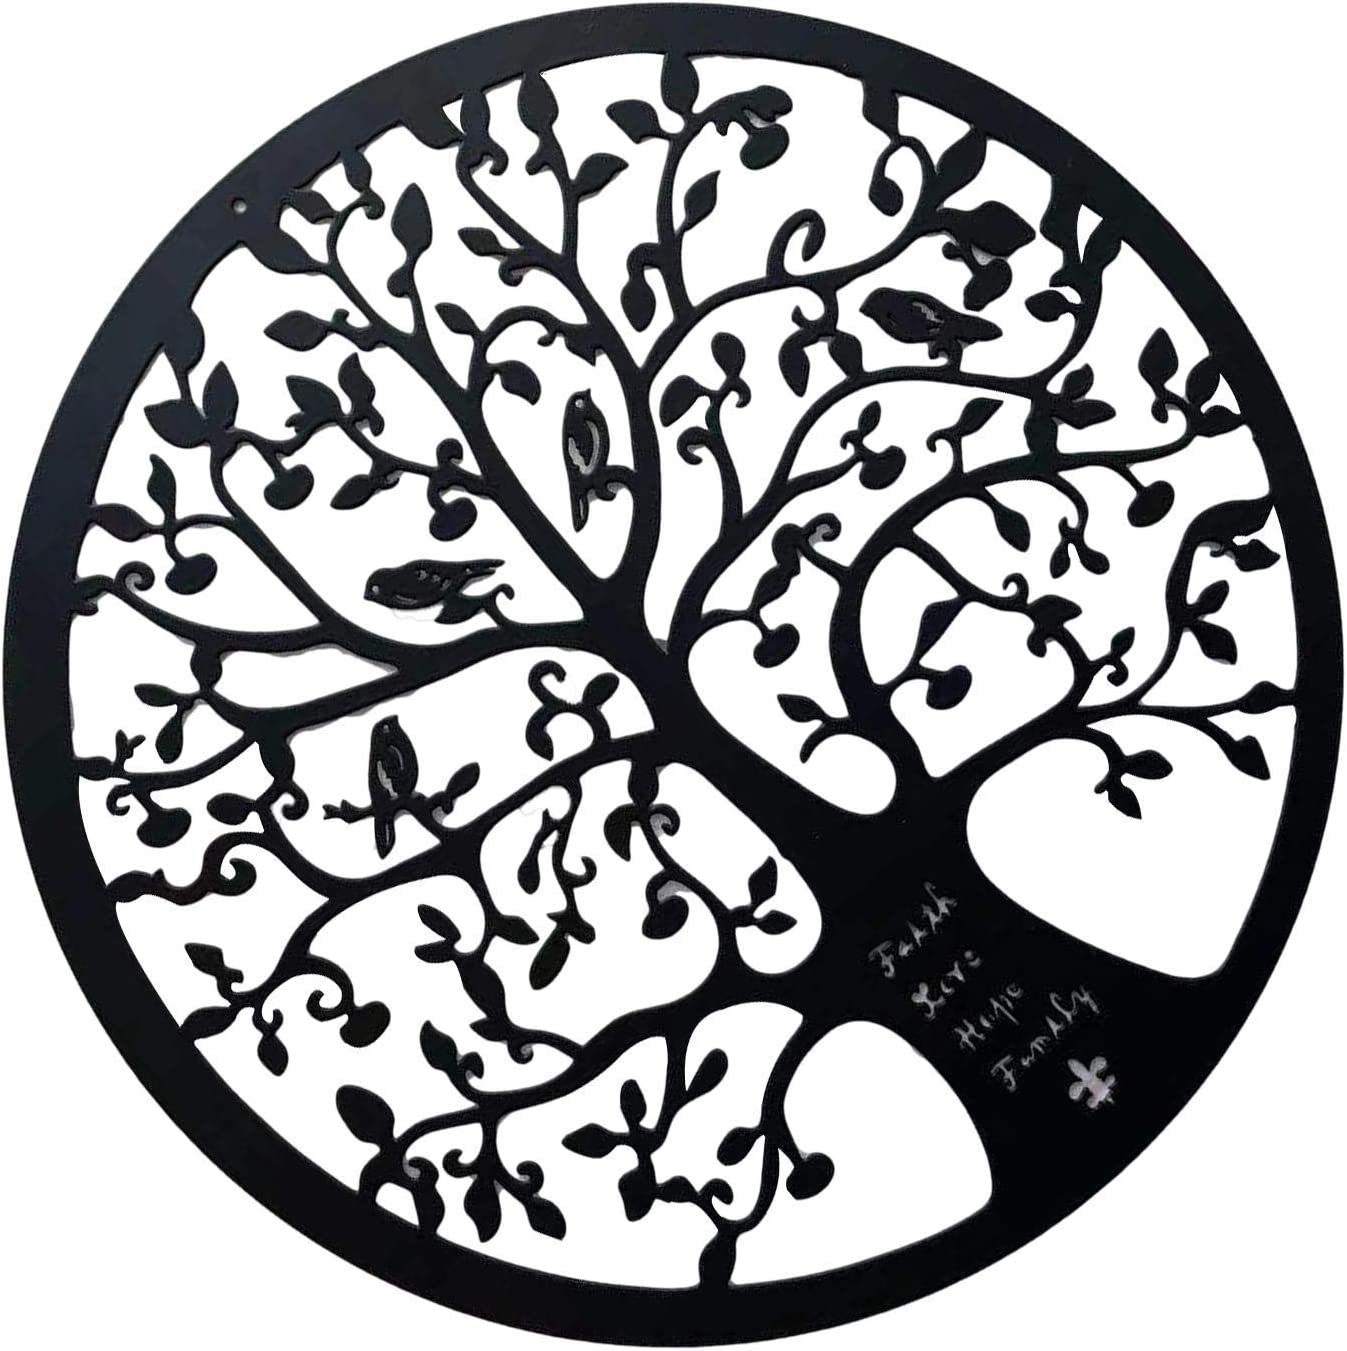 Garden Figurines, Tree of Life Metal Wall Art Wall Hangings 3D Art Lily Interior Wall Silhouette Sculpture Hand Painted Home Office Decoration Bedroom Living Room Decor 28cm Agreeable ( Color : A )